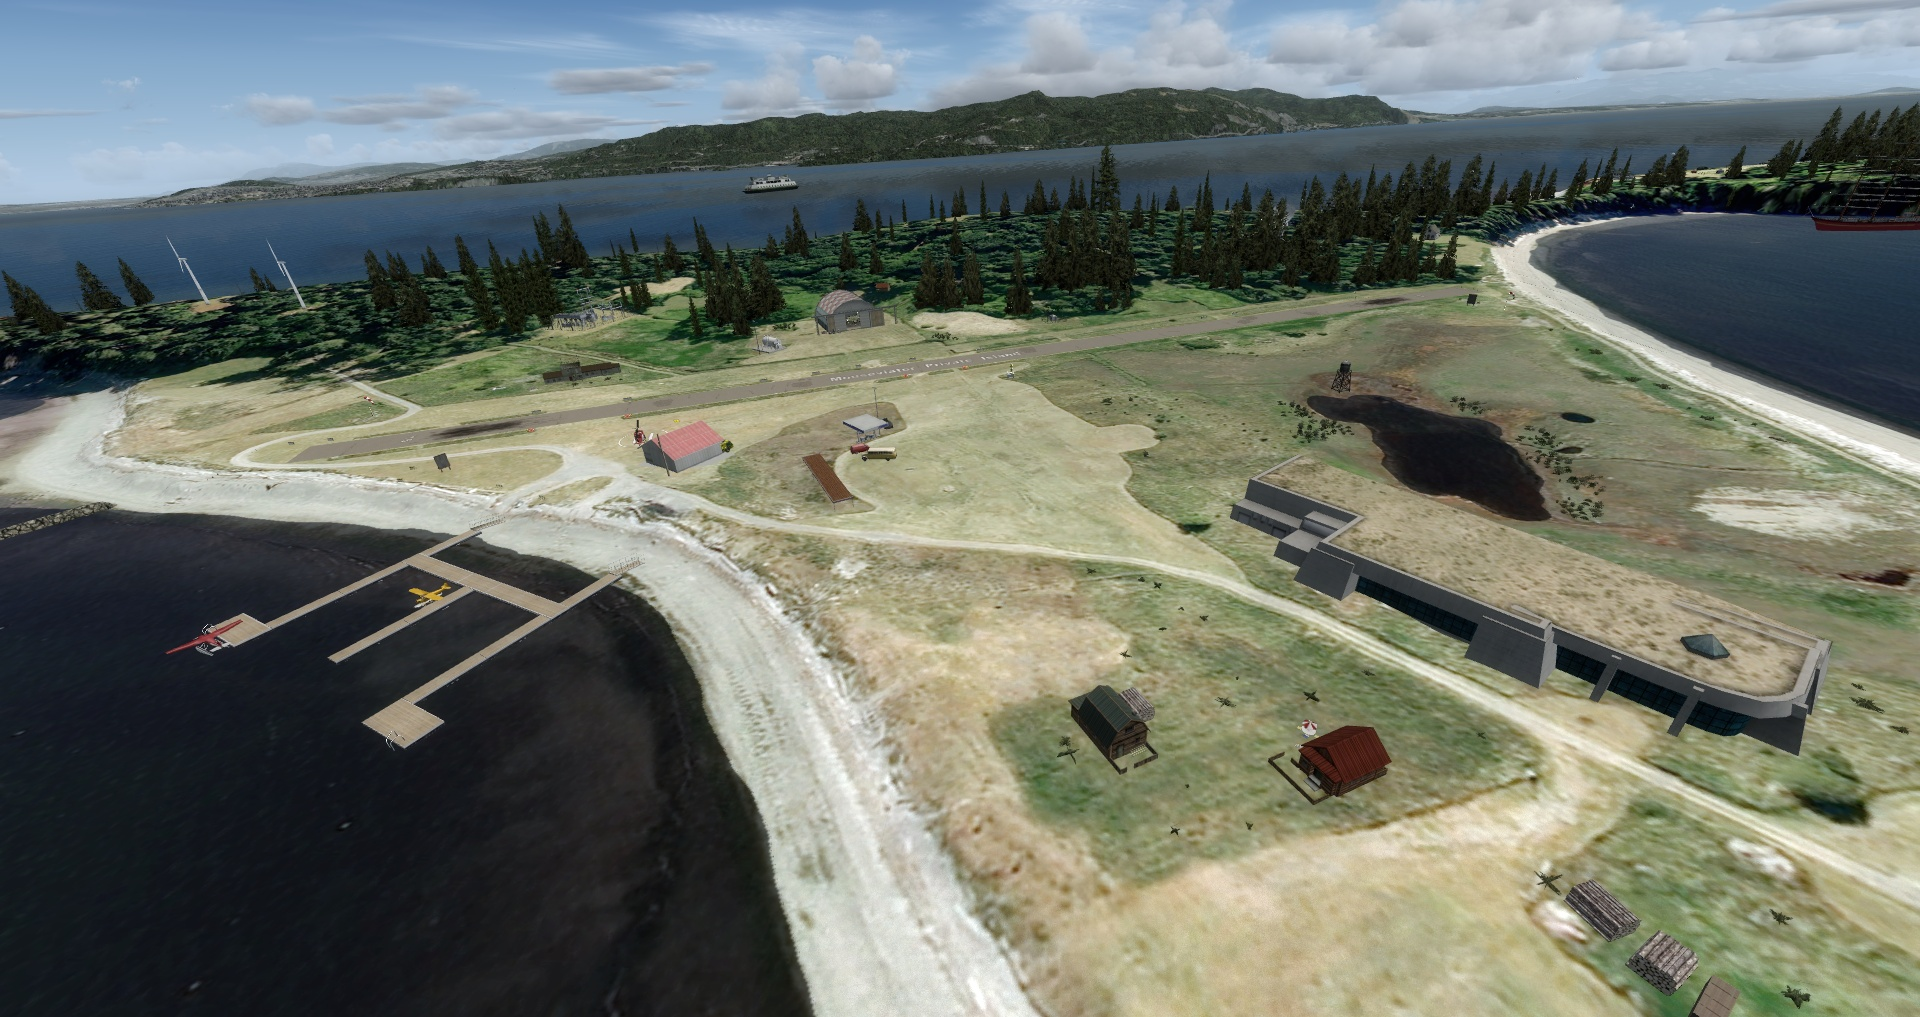 Mouseviator Private Island - Runway 16/34, seaplane dock, antinuclear bunker :)